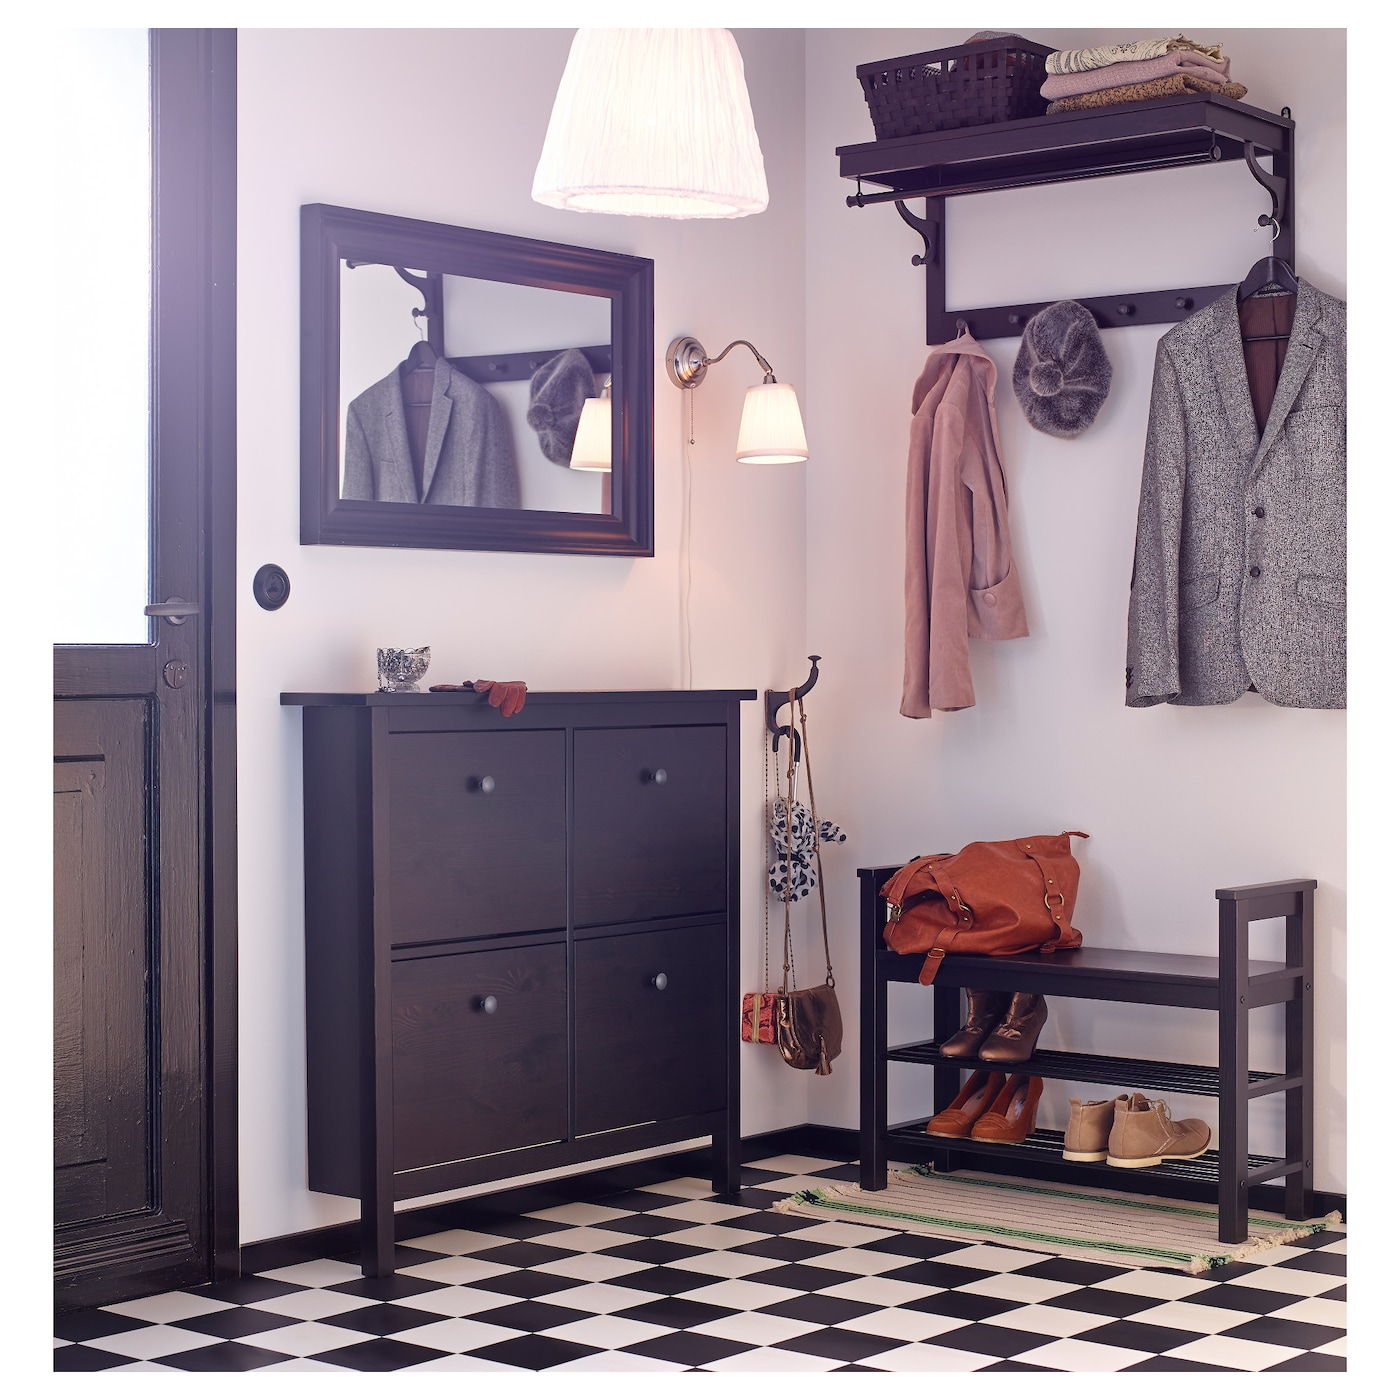 hemnes mirror black brown 60x90 cm ikea. Black Bedroom Furniture Sets. Home Design Ideas